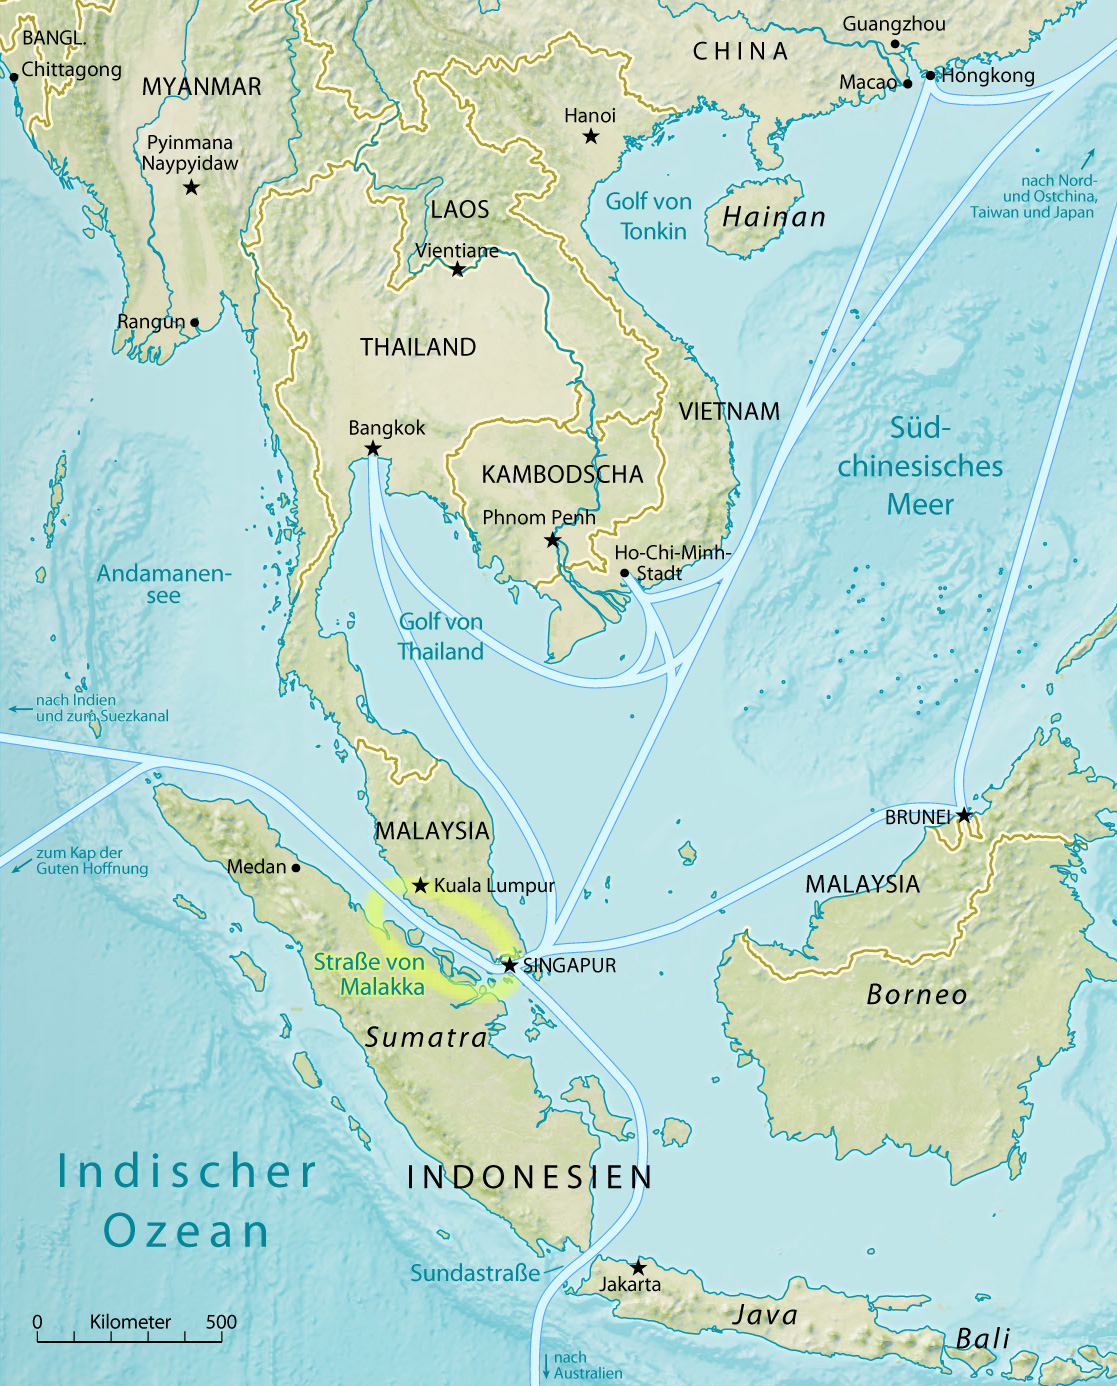 Location of the Malacca Strait on the map. Where is the Strait of Malacca 15